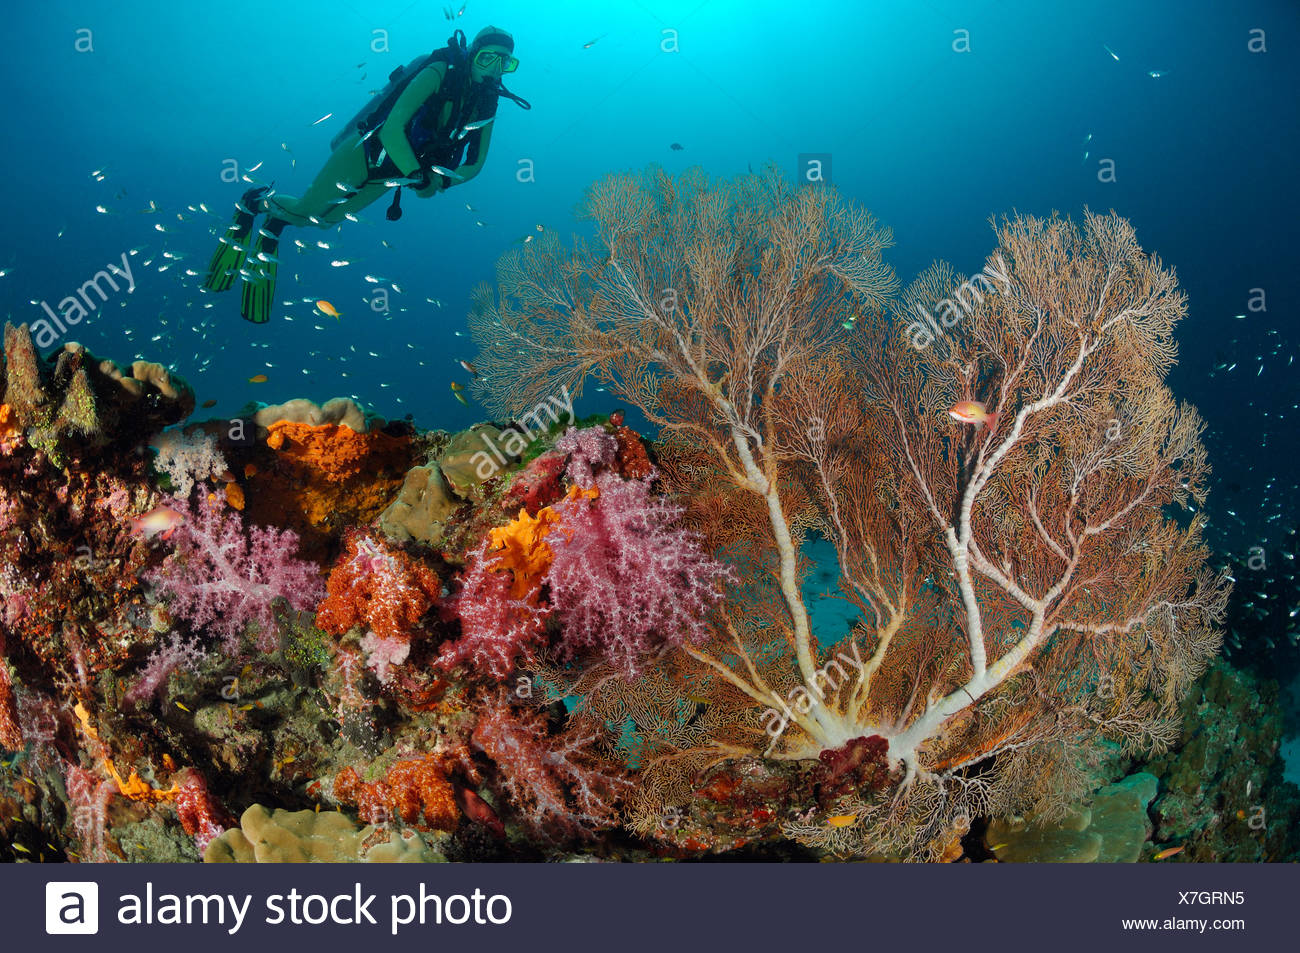 Scuba diving over Coral Reef, Similan Islands, Thailand - Stock Image